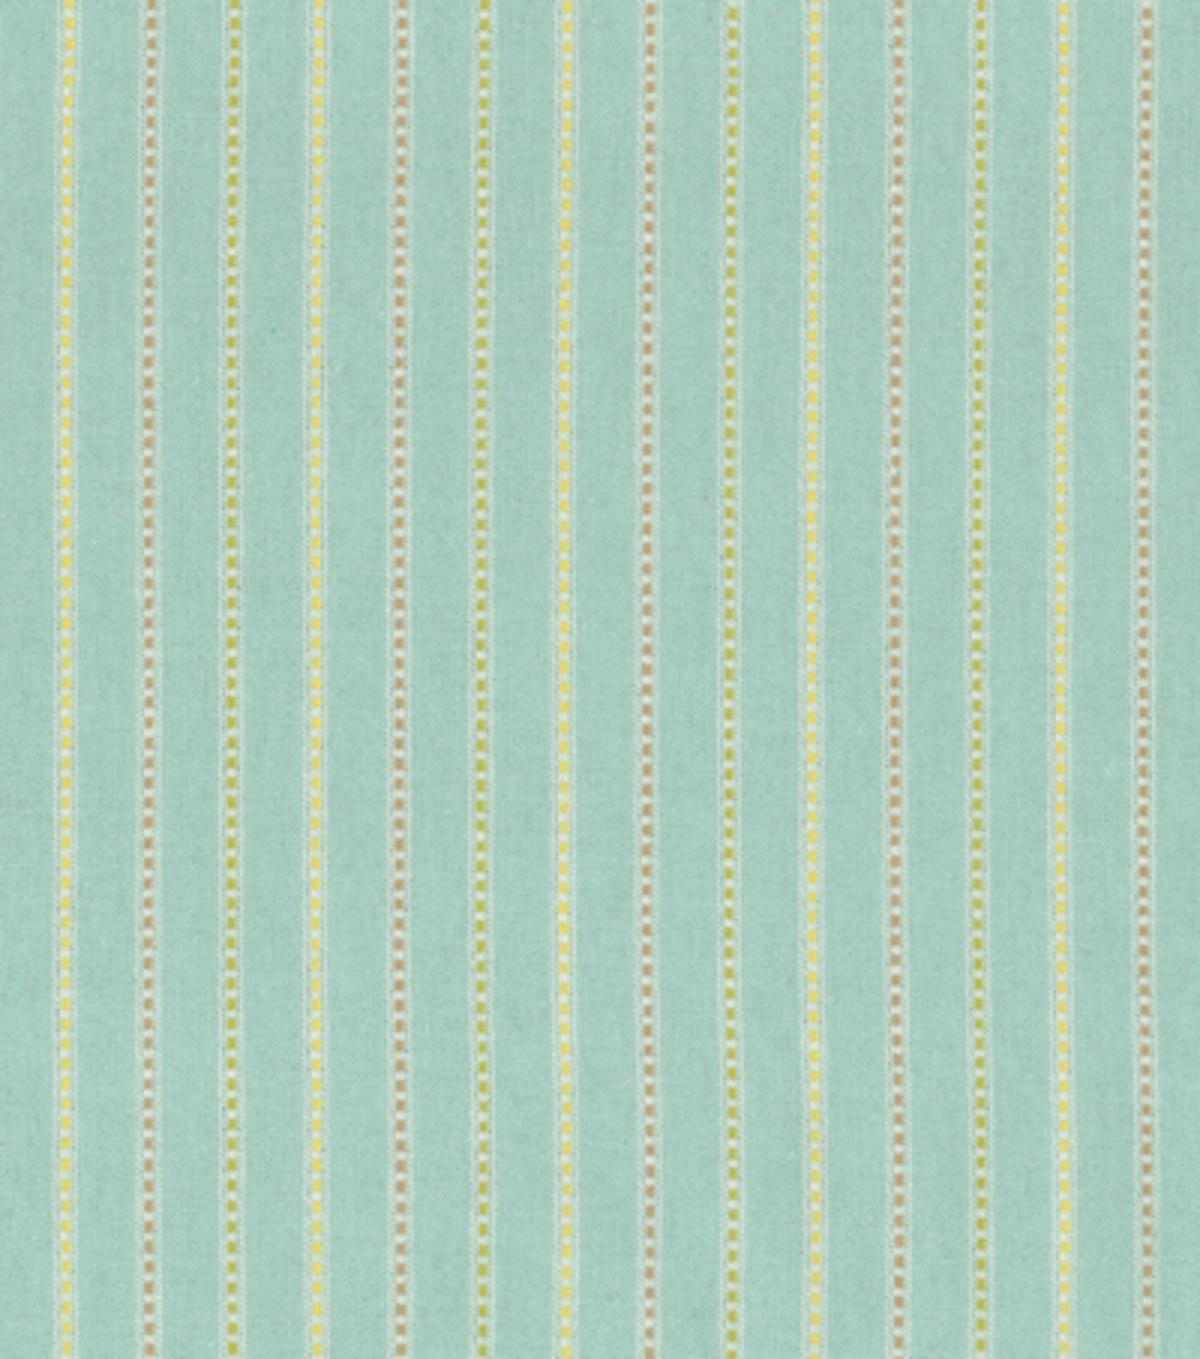 Home Decor 8\u0022x8\u0022 Fabric Swatch-Upholstery-Waverly Highwire/Creme de Menthe